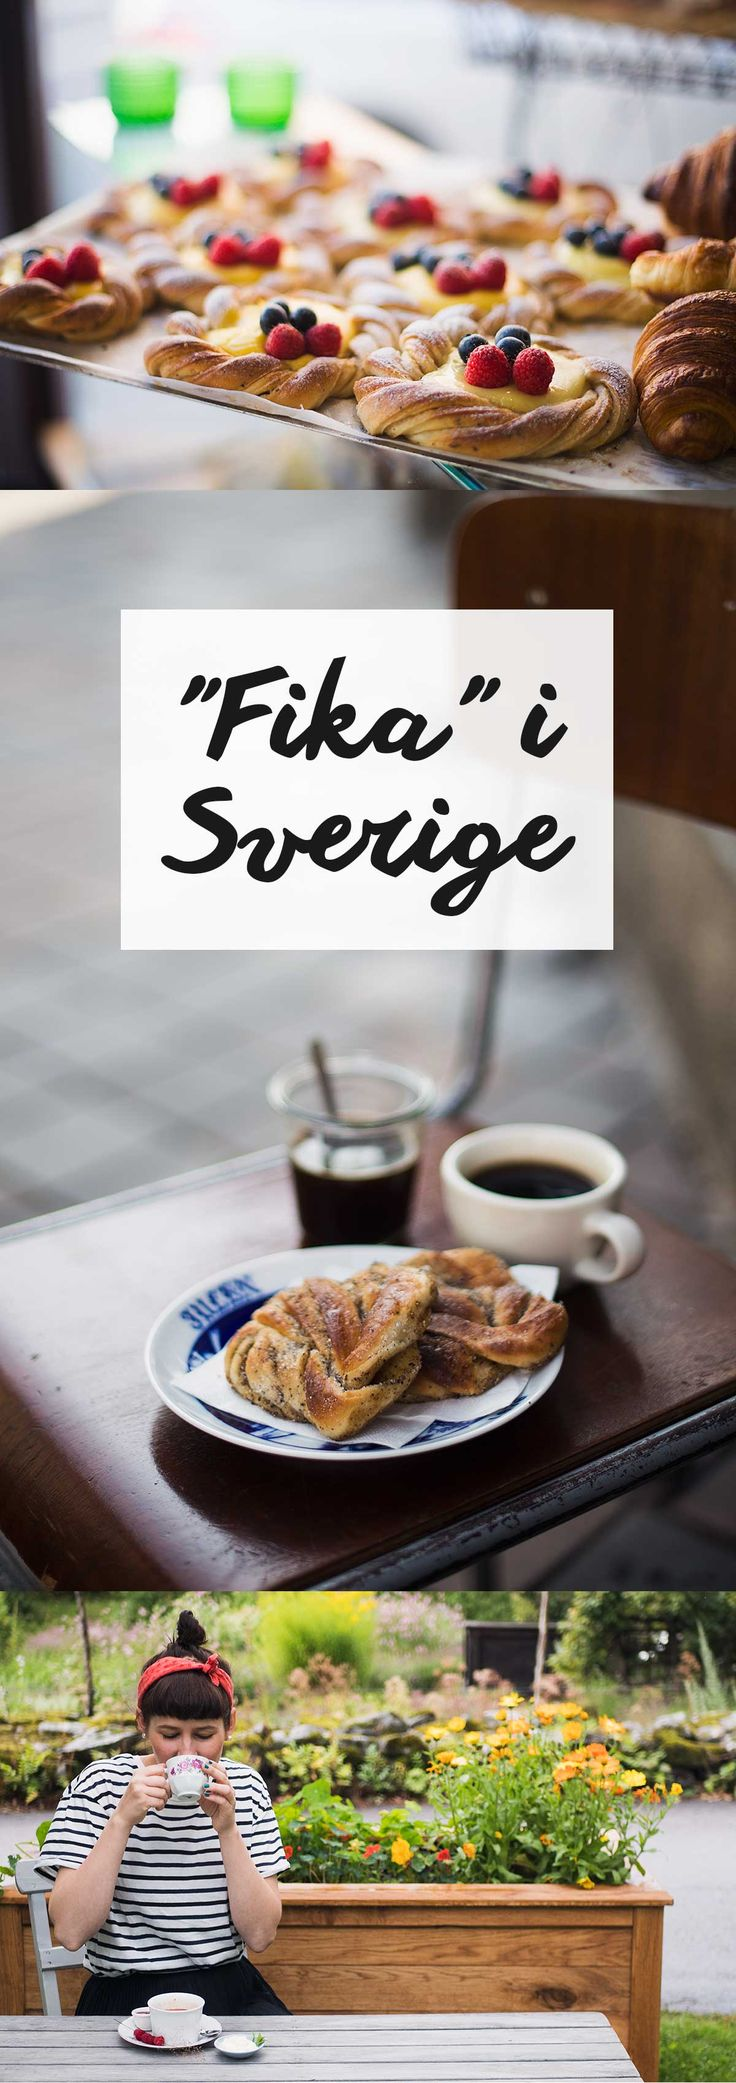 Guide to Sweden's best coffee places |  Miss.  fussy